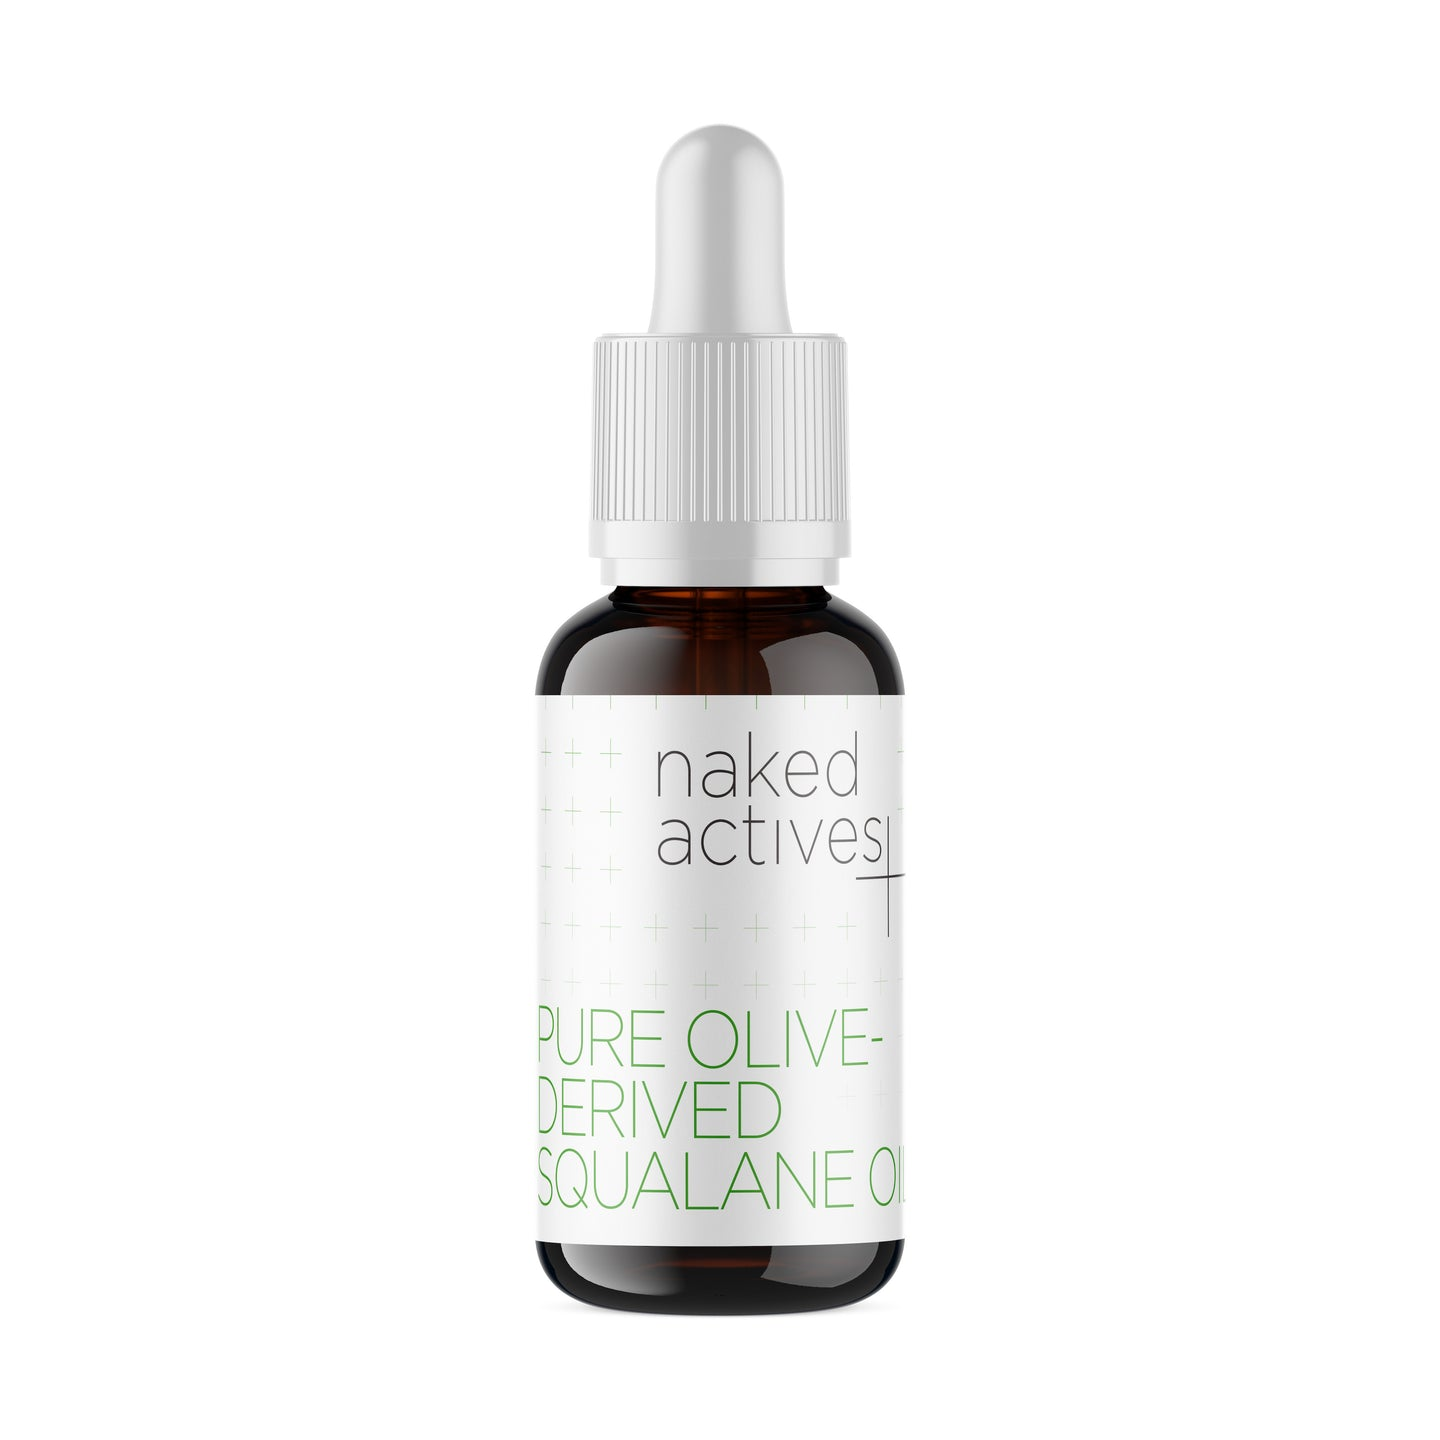 Naked Actives Pure Olive Derived Squalane Oil